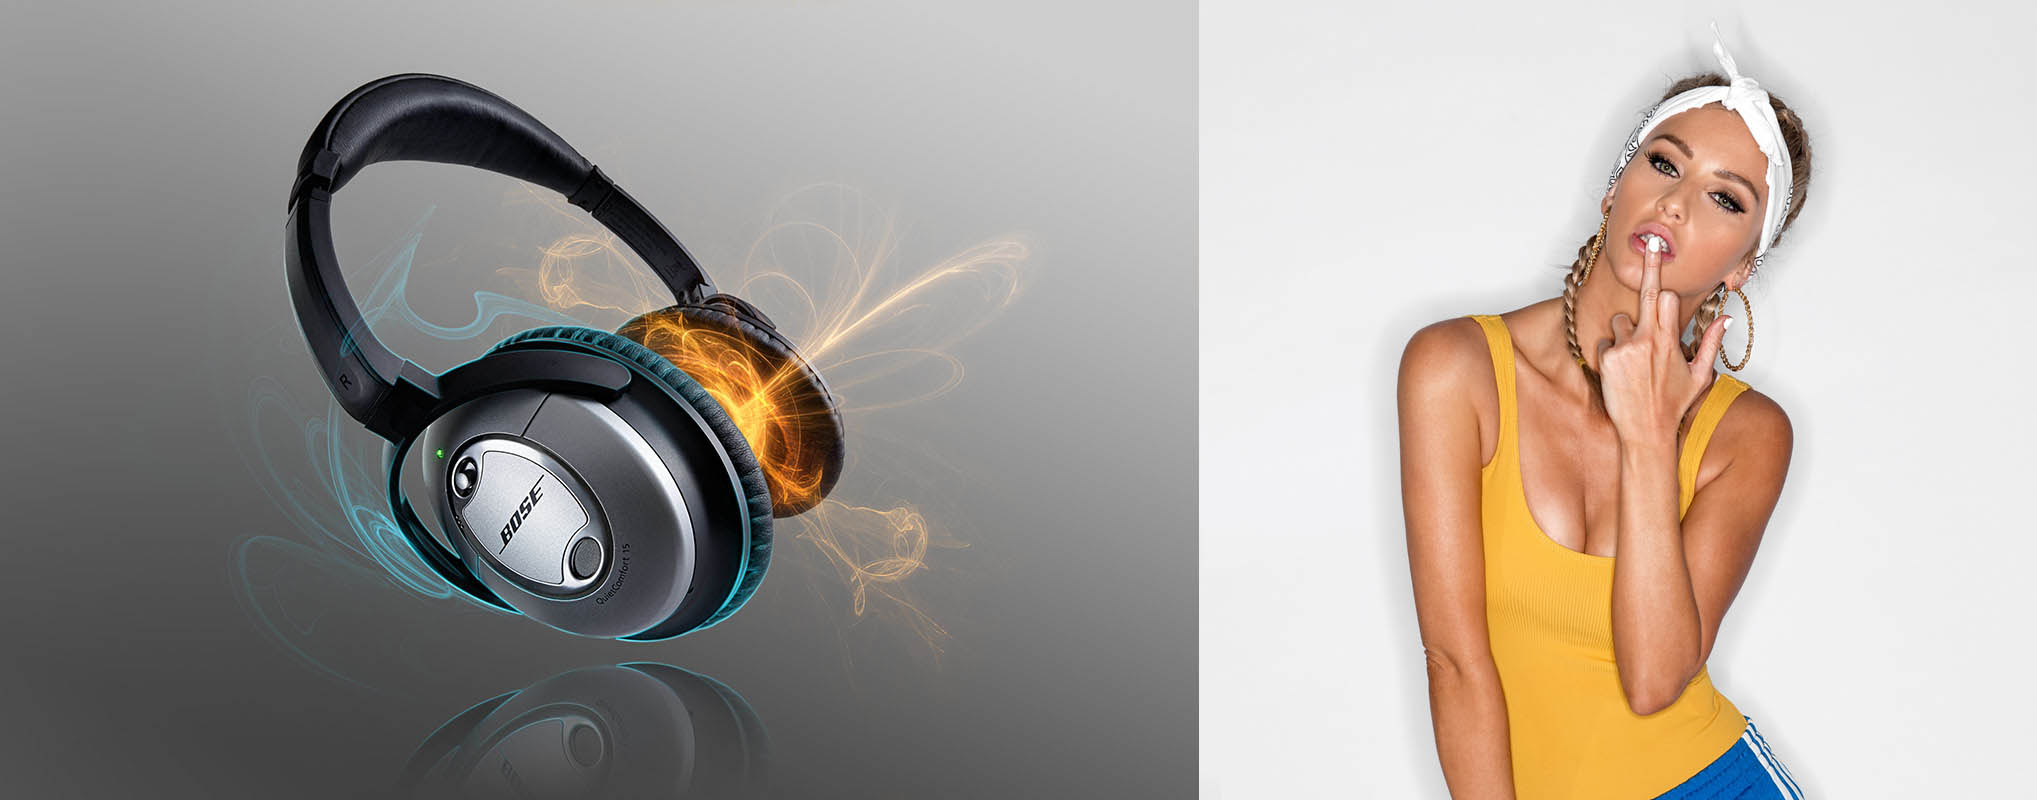 combine_commercial_photography_paul_christey_brisbane_product_bose_headphones_low-res